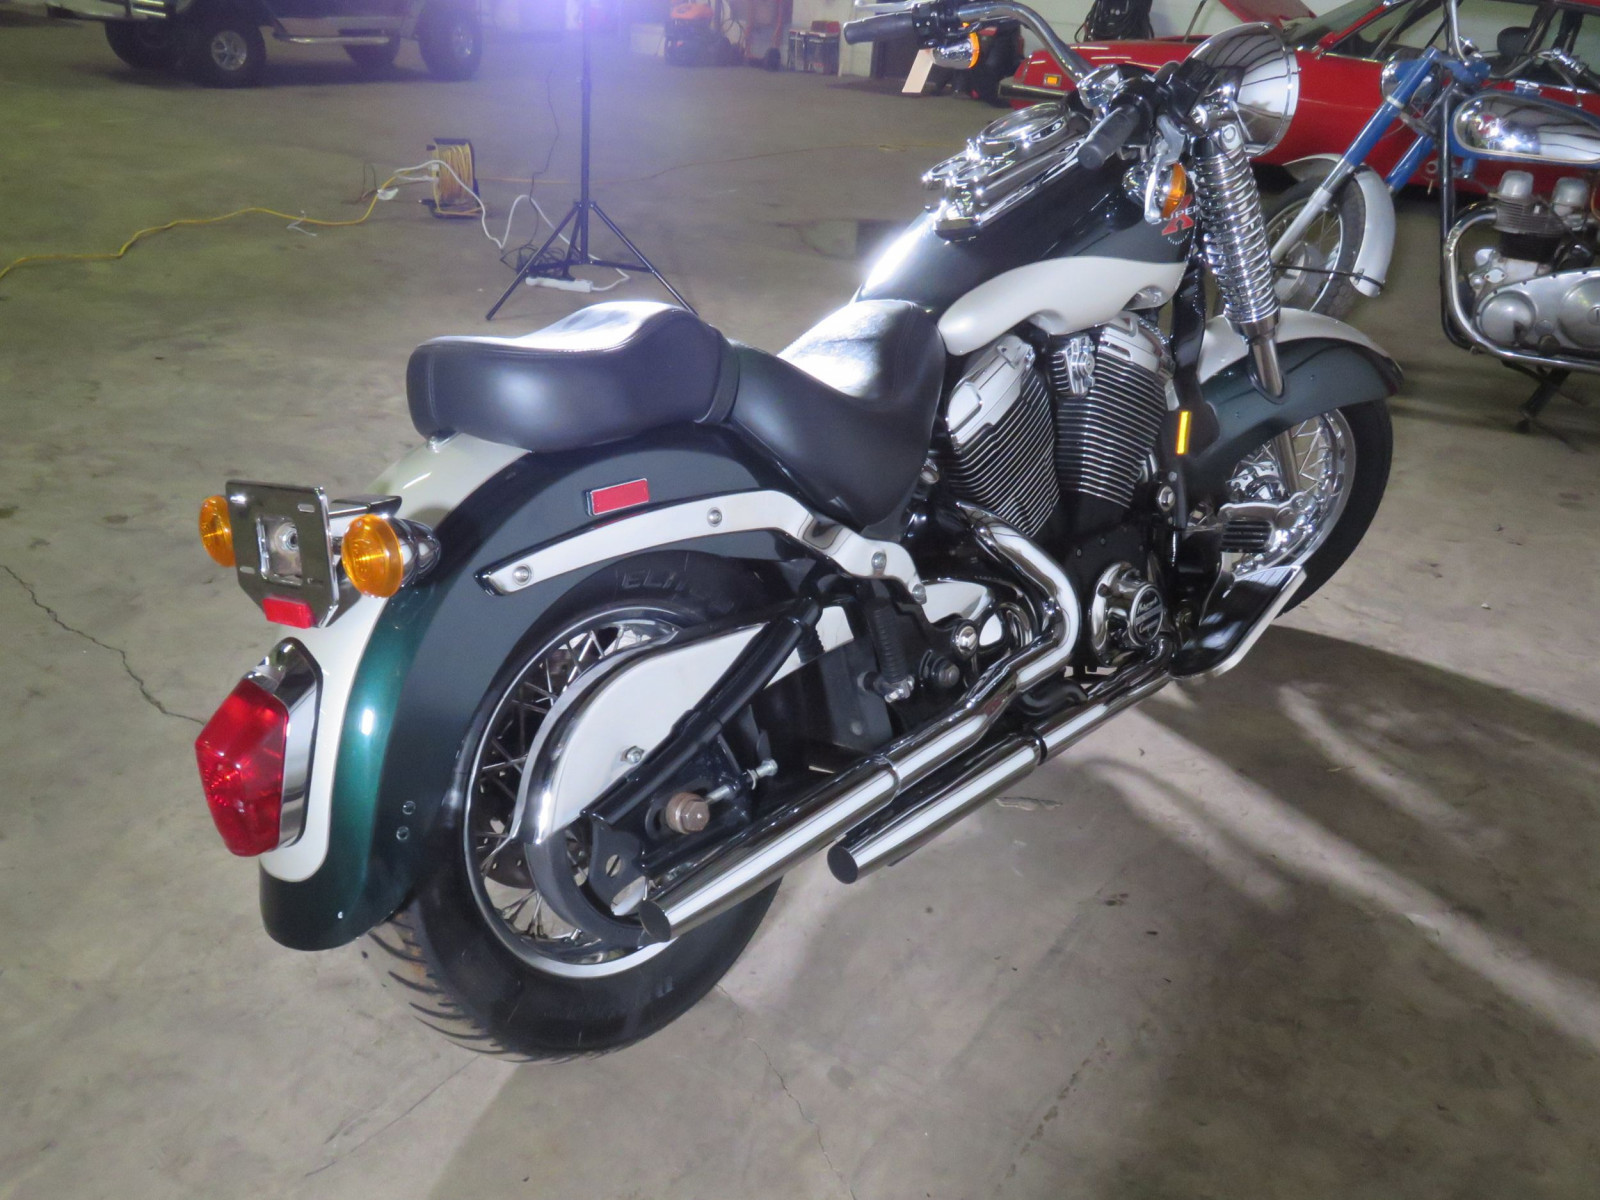 1999 Excelsior Henderson Super X Motorcycle - Image 5